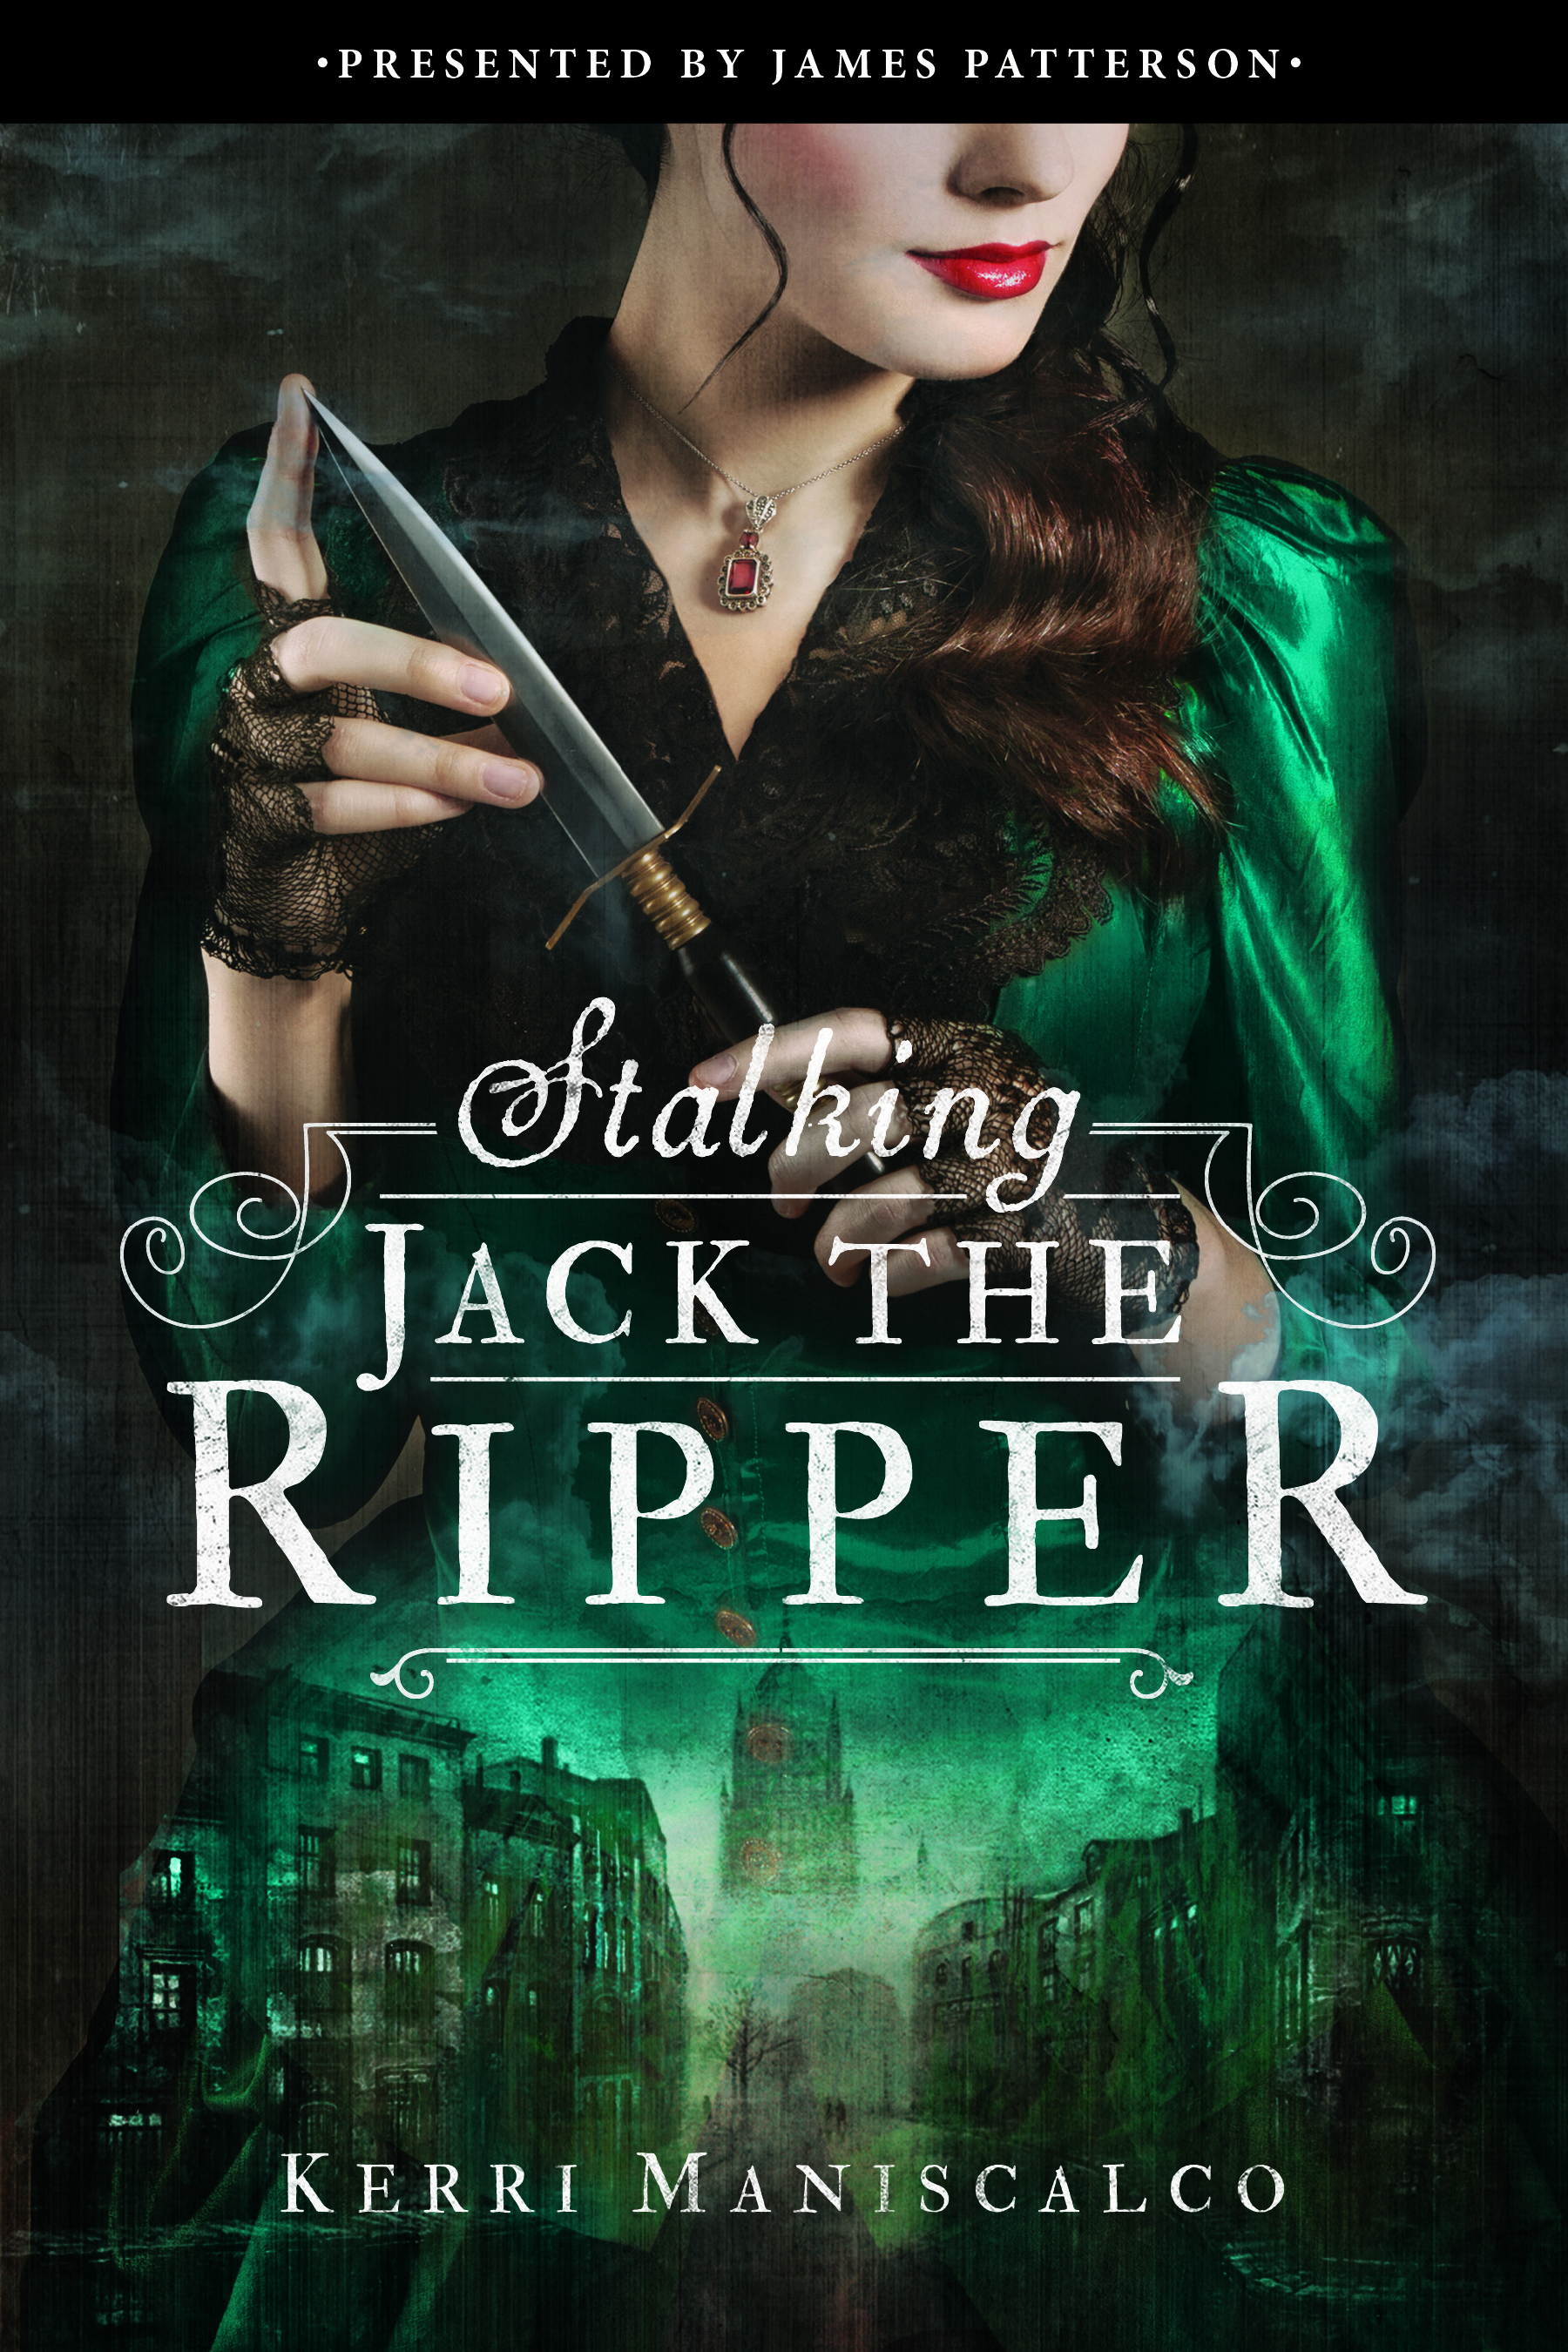 Blog Tour Review – Stalking Jack the Ripper by Kerri Maniscalco